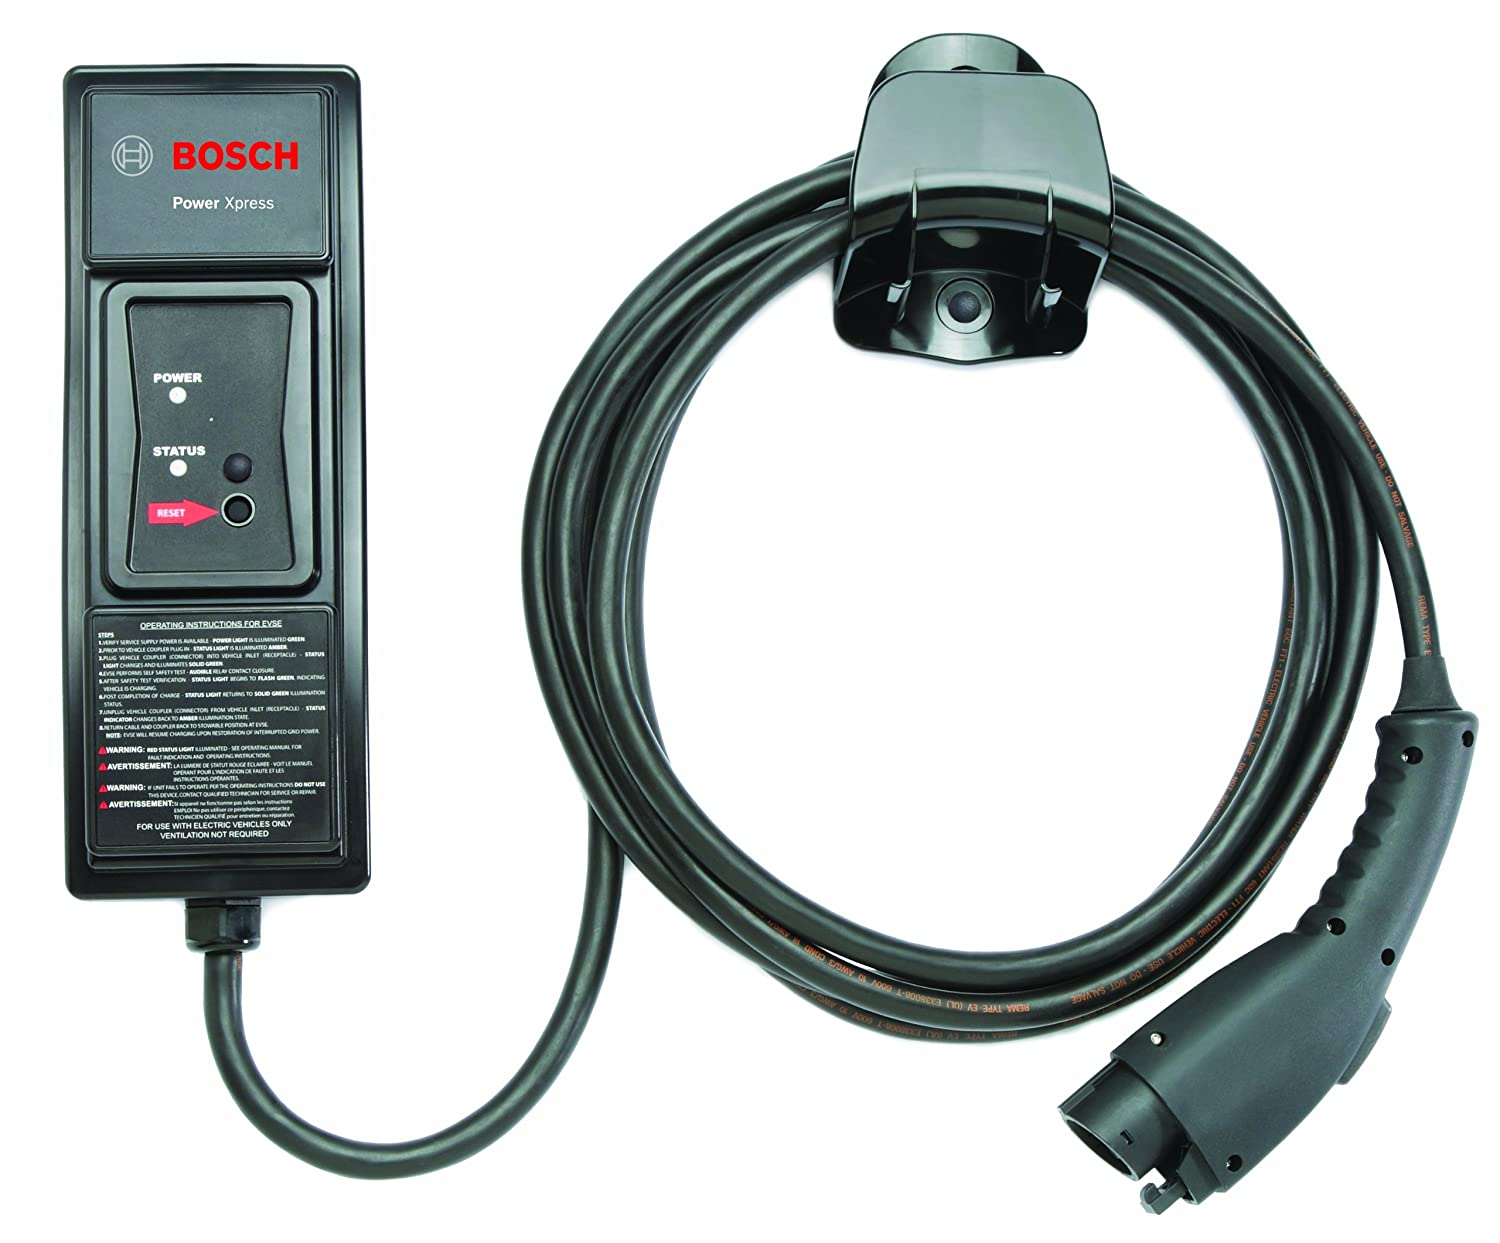 Bosch EL-50600-B Power Xpress 240V Charging Station with Cord Holder